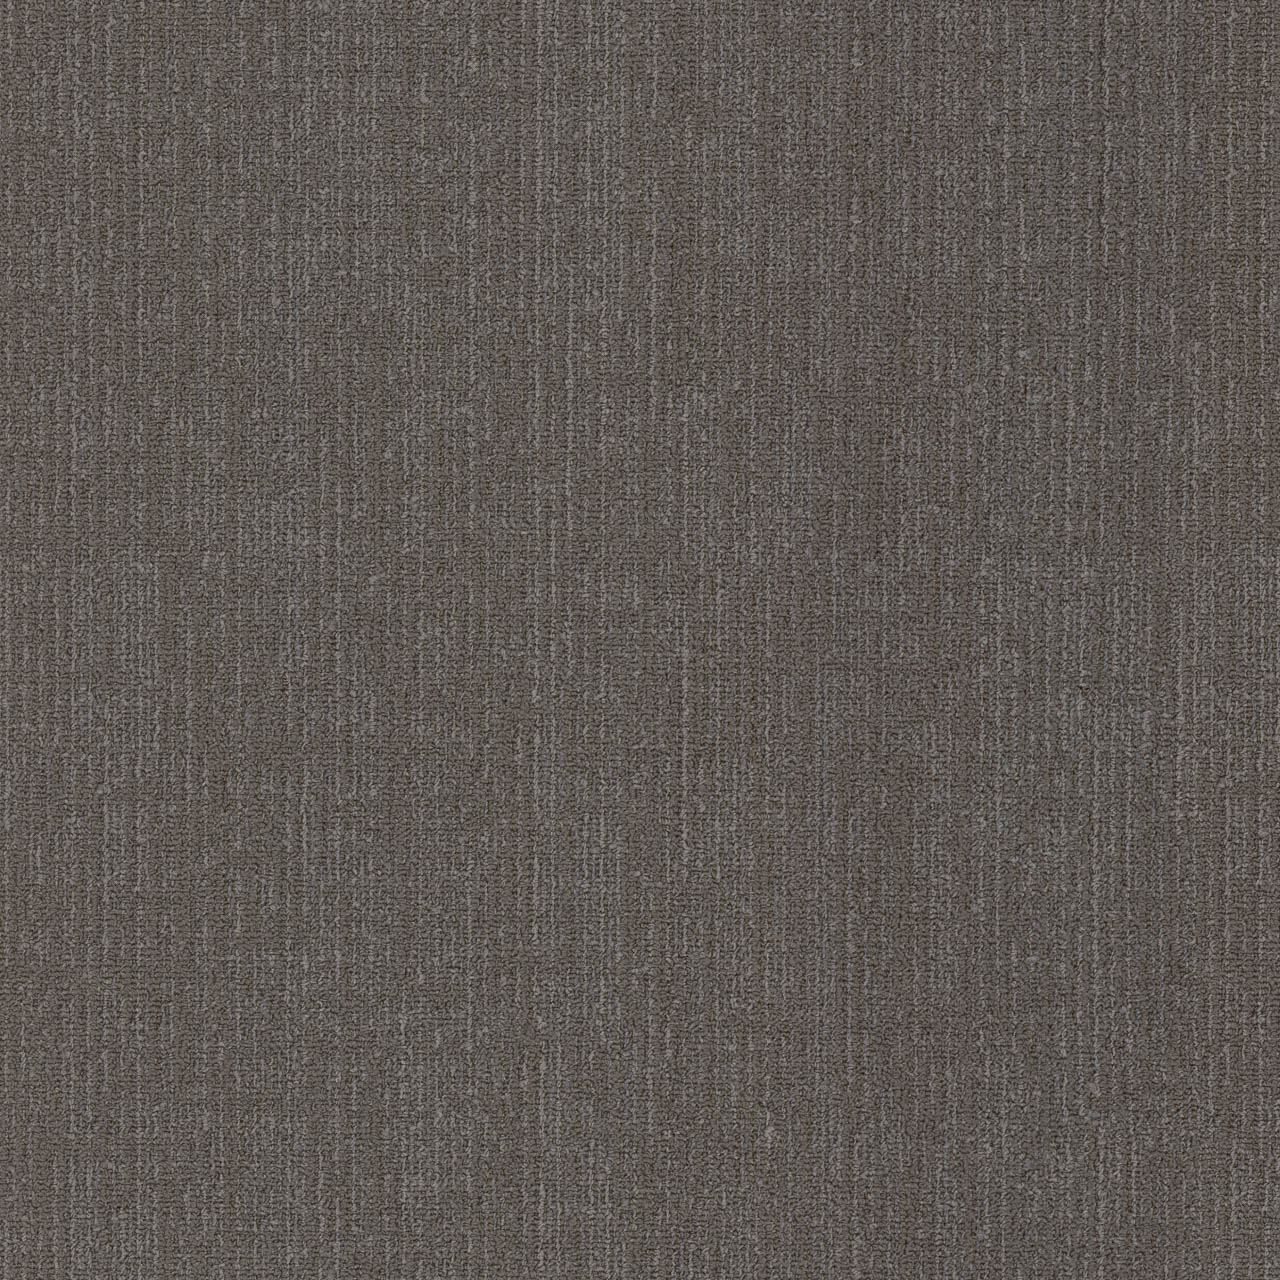 Amtico International: Colour Anchor Wink